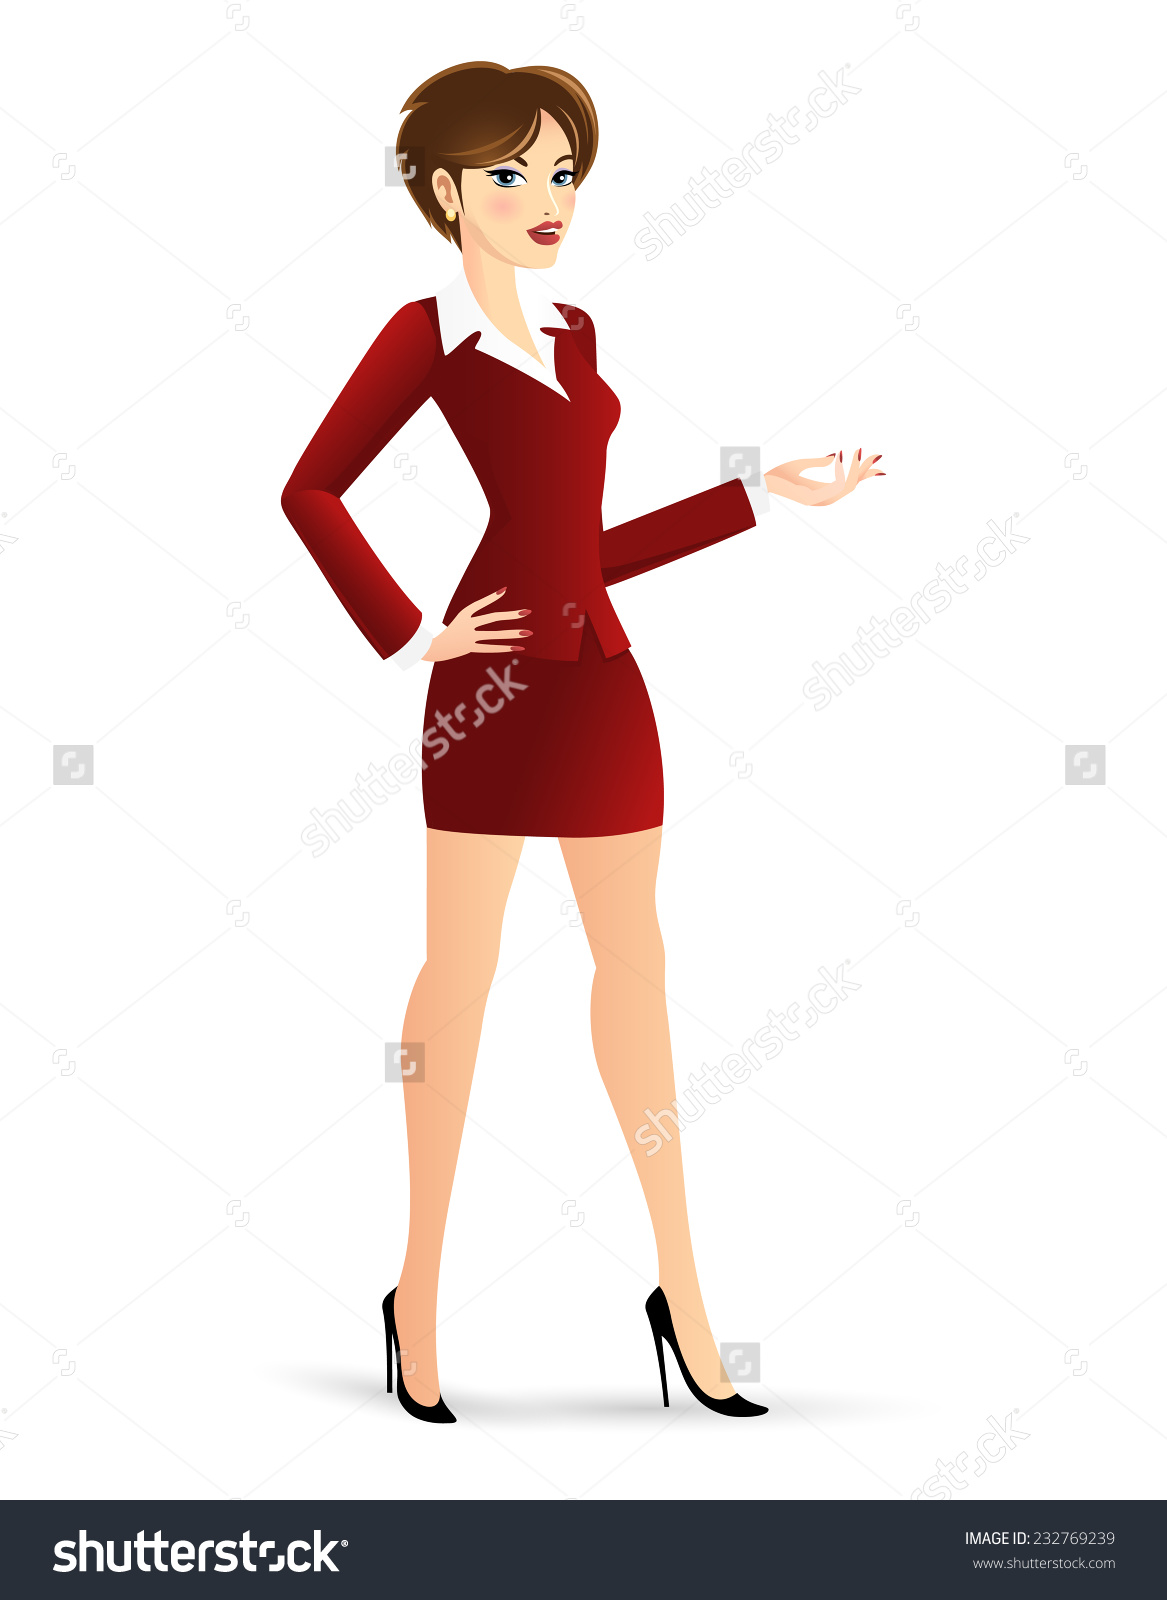 Clip Art Lady Standing Clipground